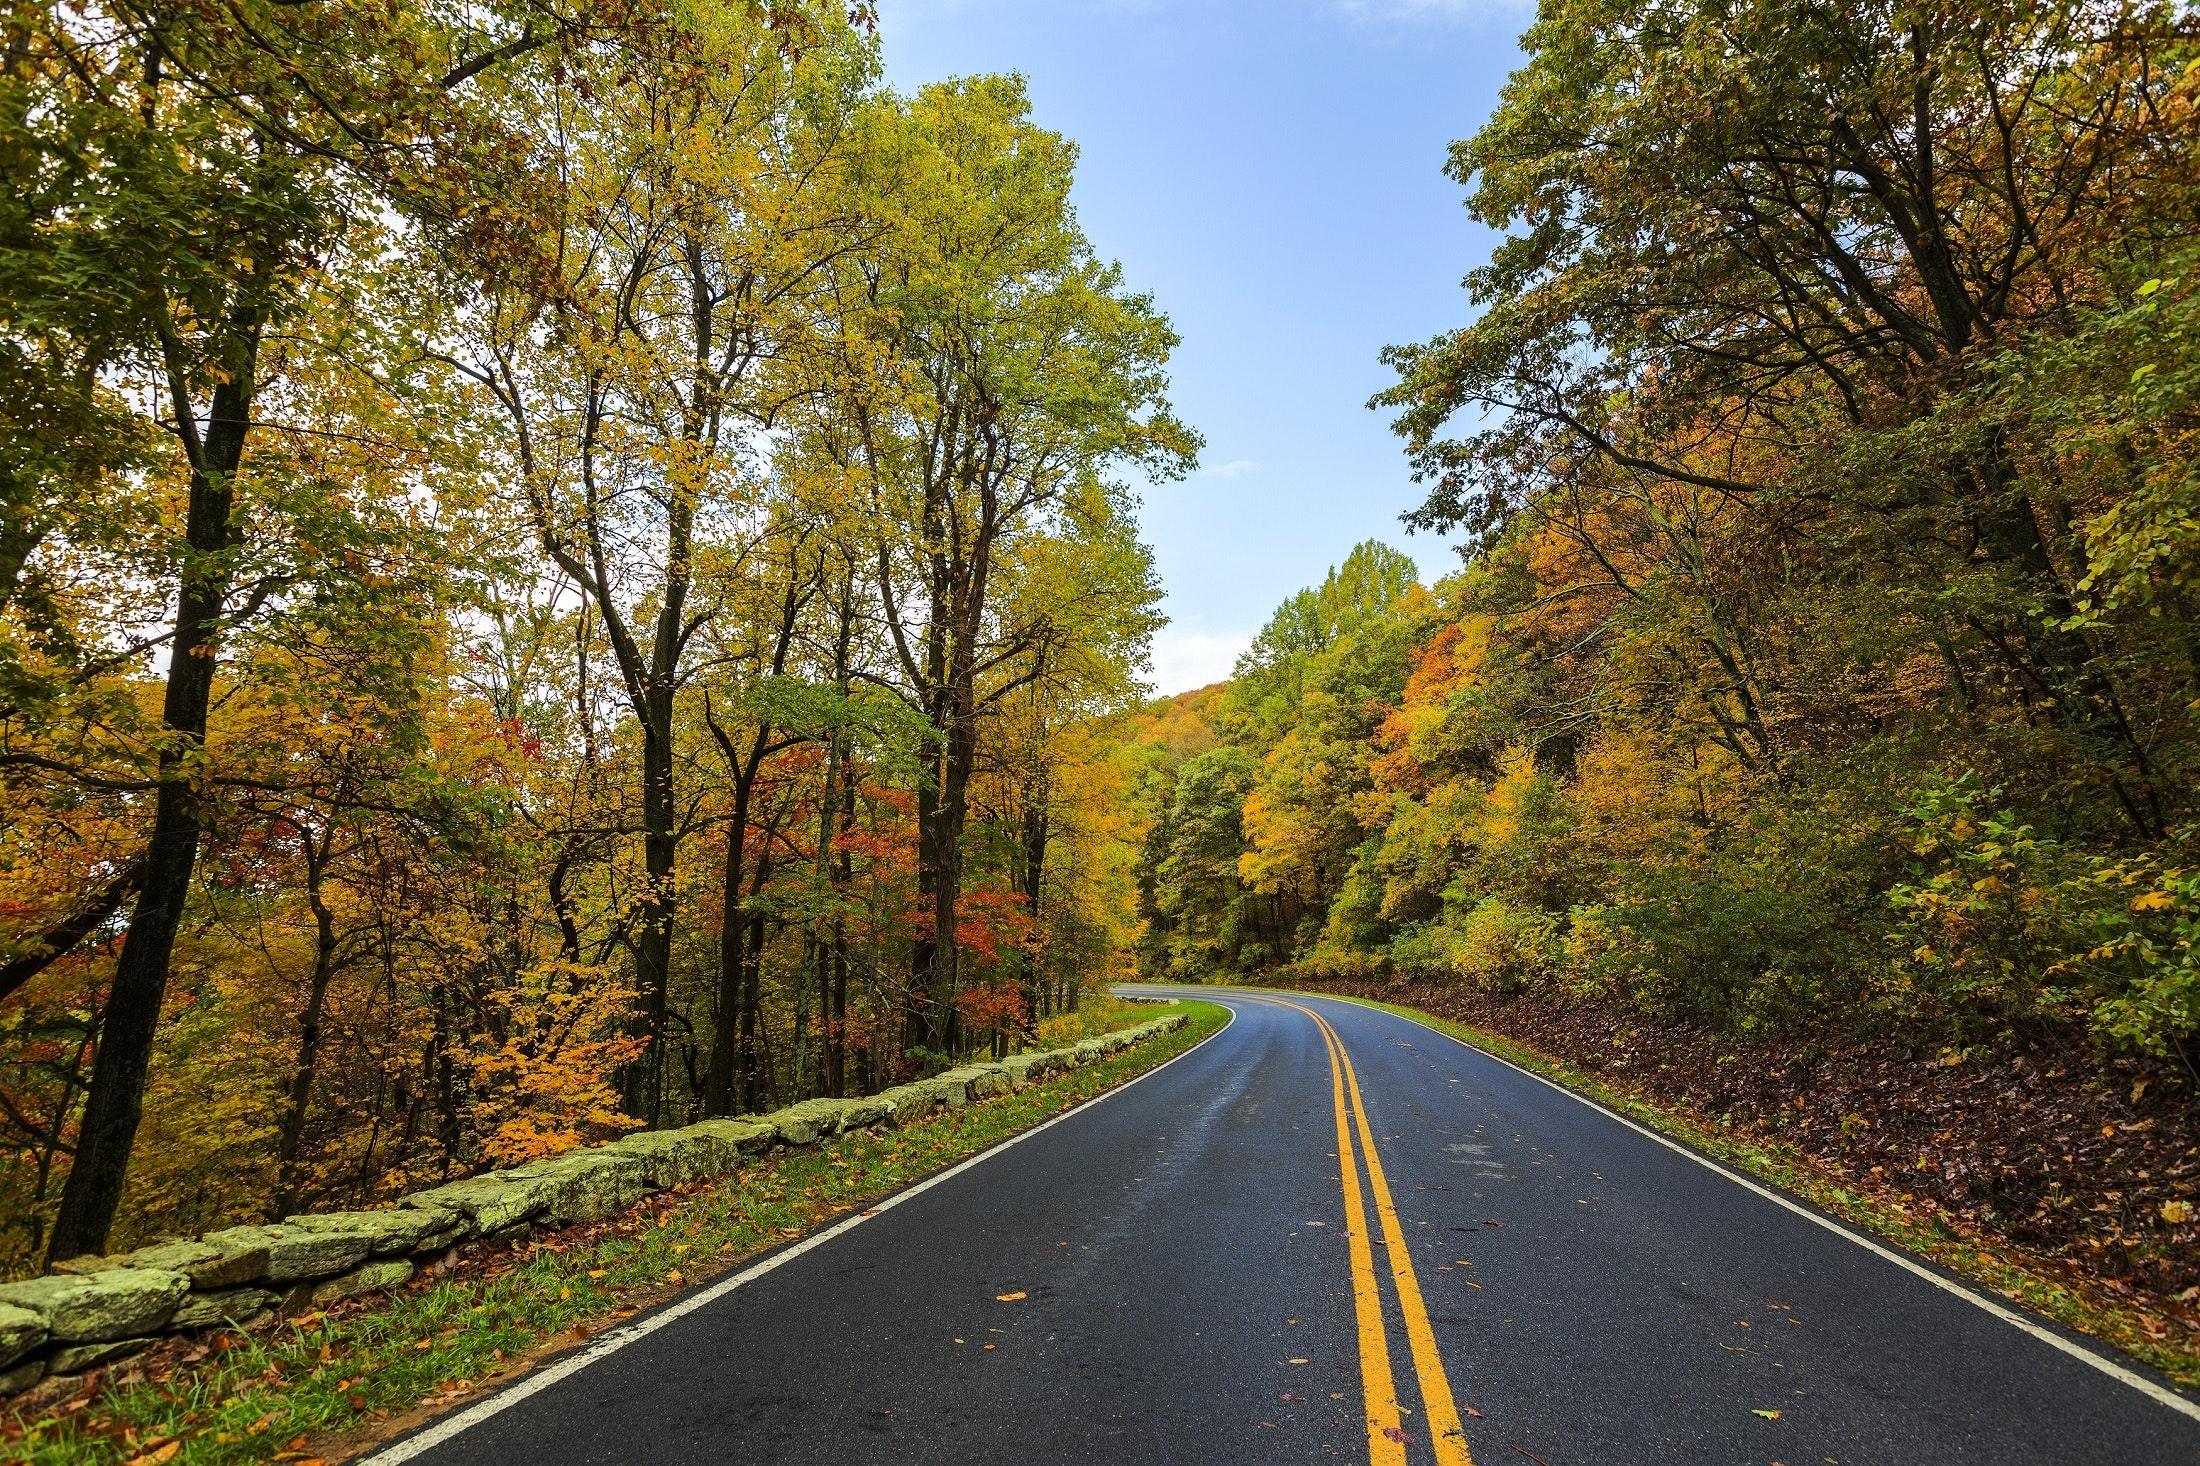 asphalt-autumn-beauty-237018.jpg